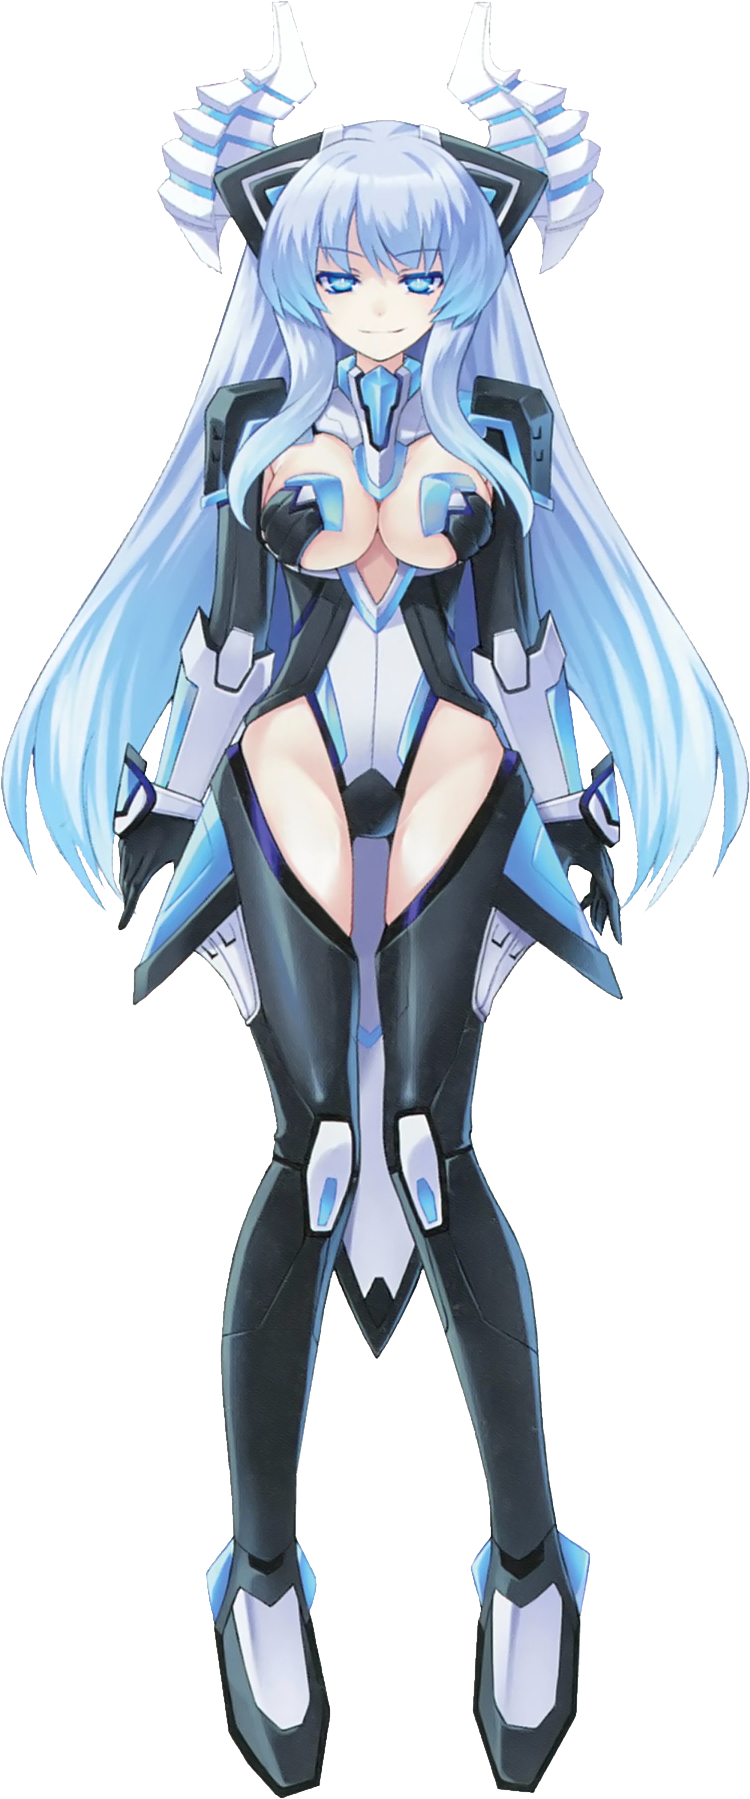 Rei Ryghts/Hyper Dimension